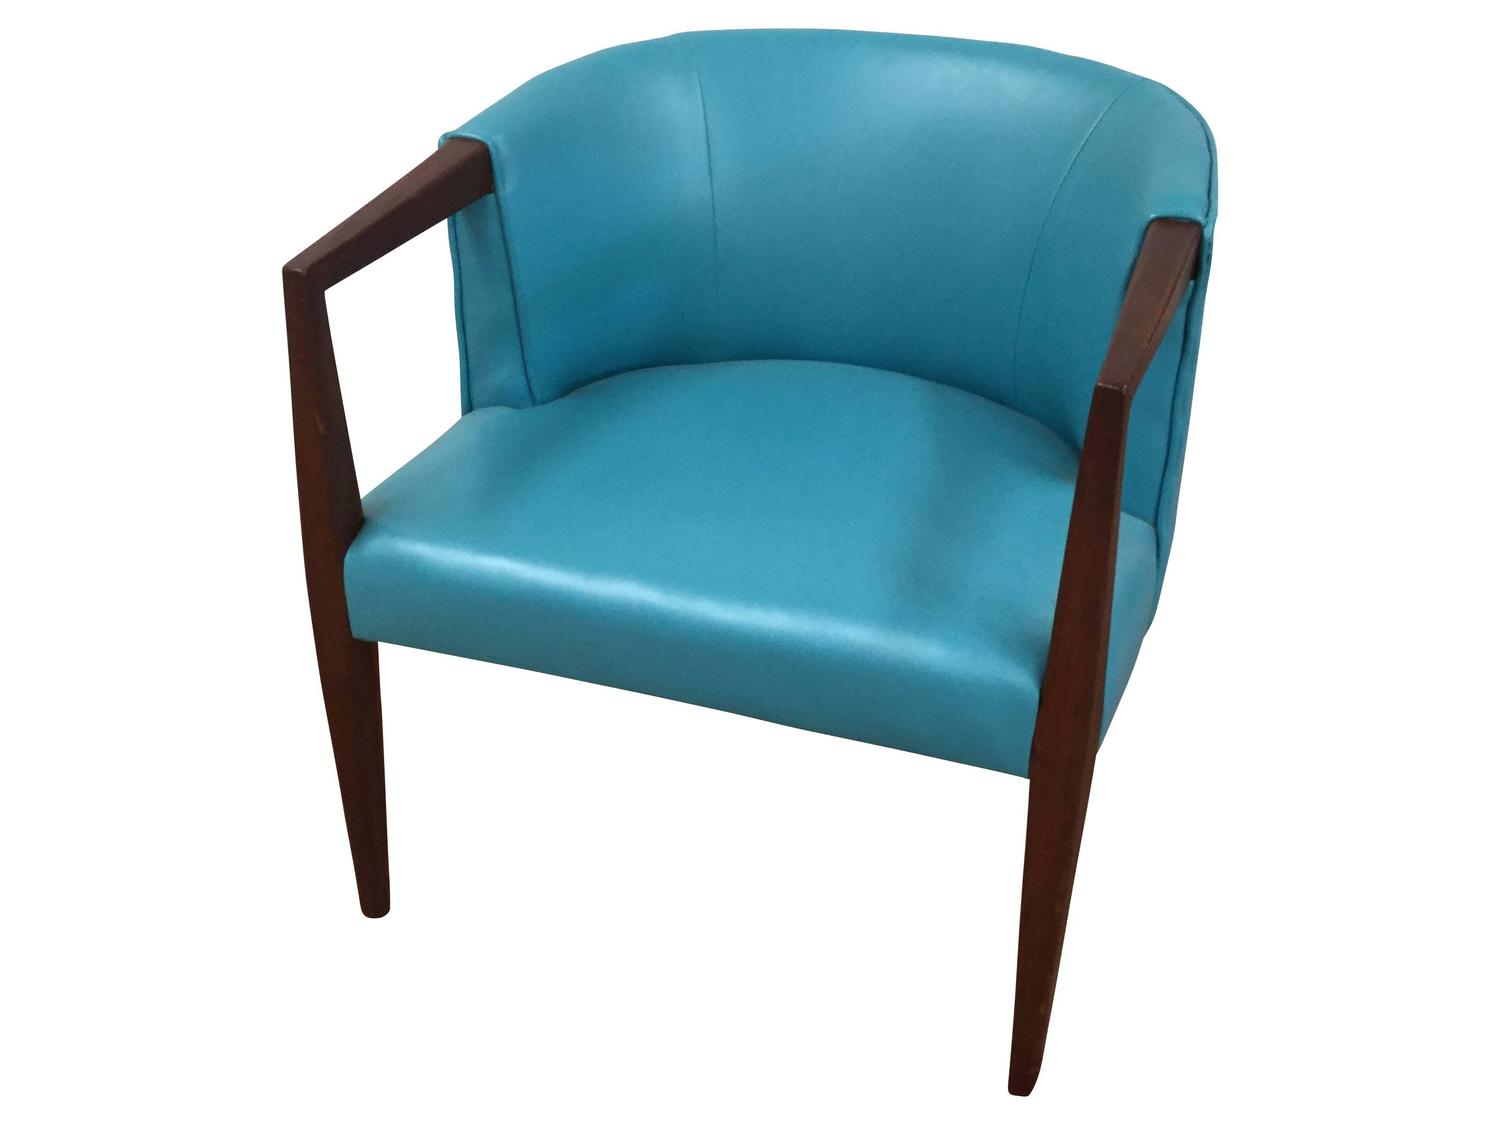 Vinyl Chairs For Sale Set Of Mid Century Modern Chrome